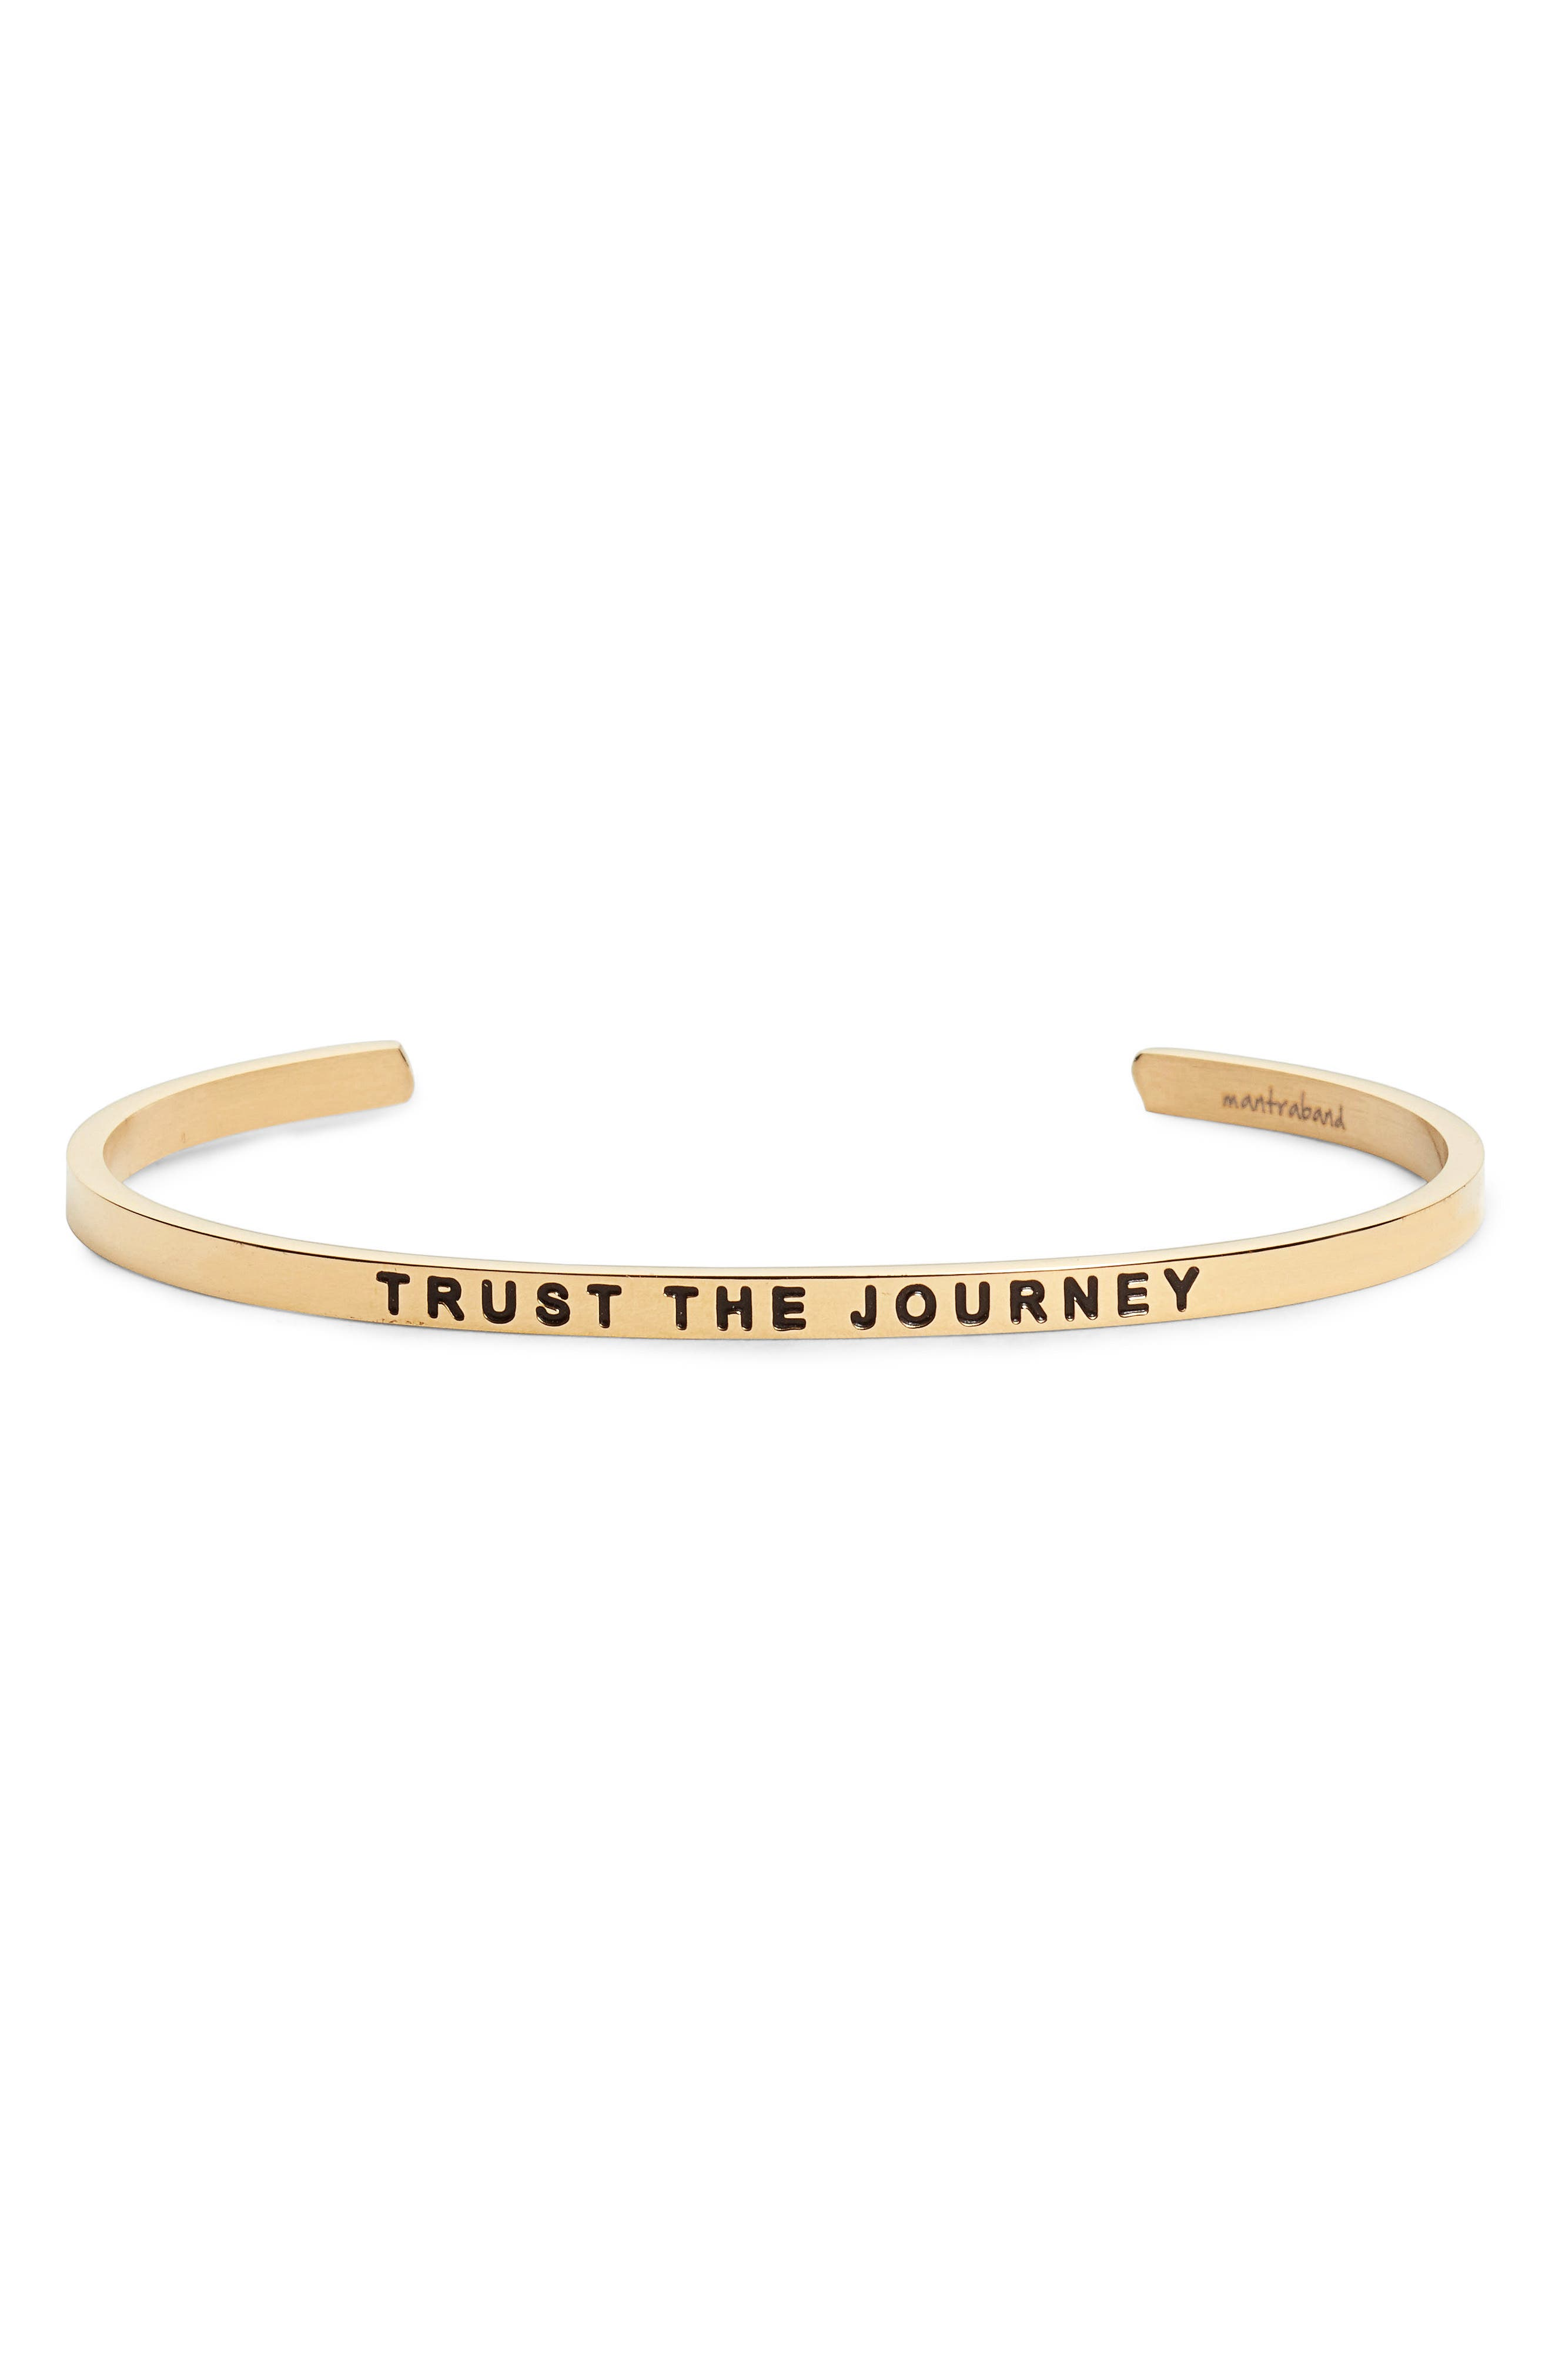 Trust the Journey Cuff,                             Main thumbnail 3, color,